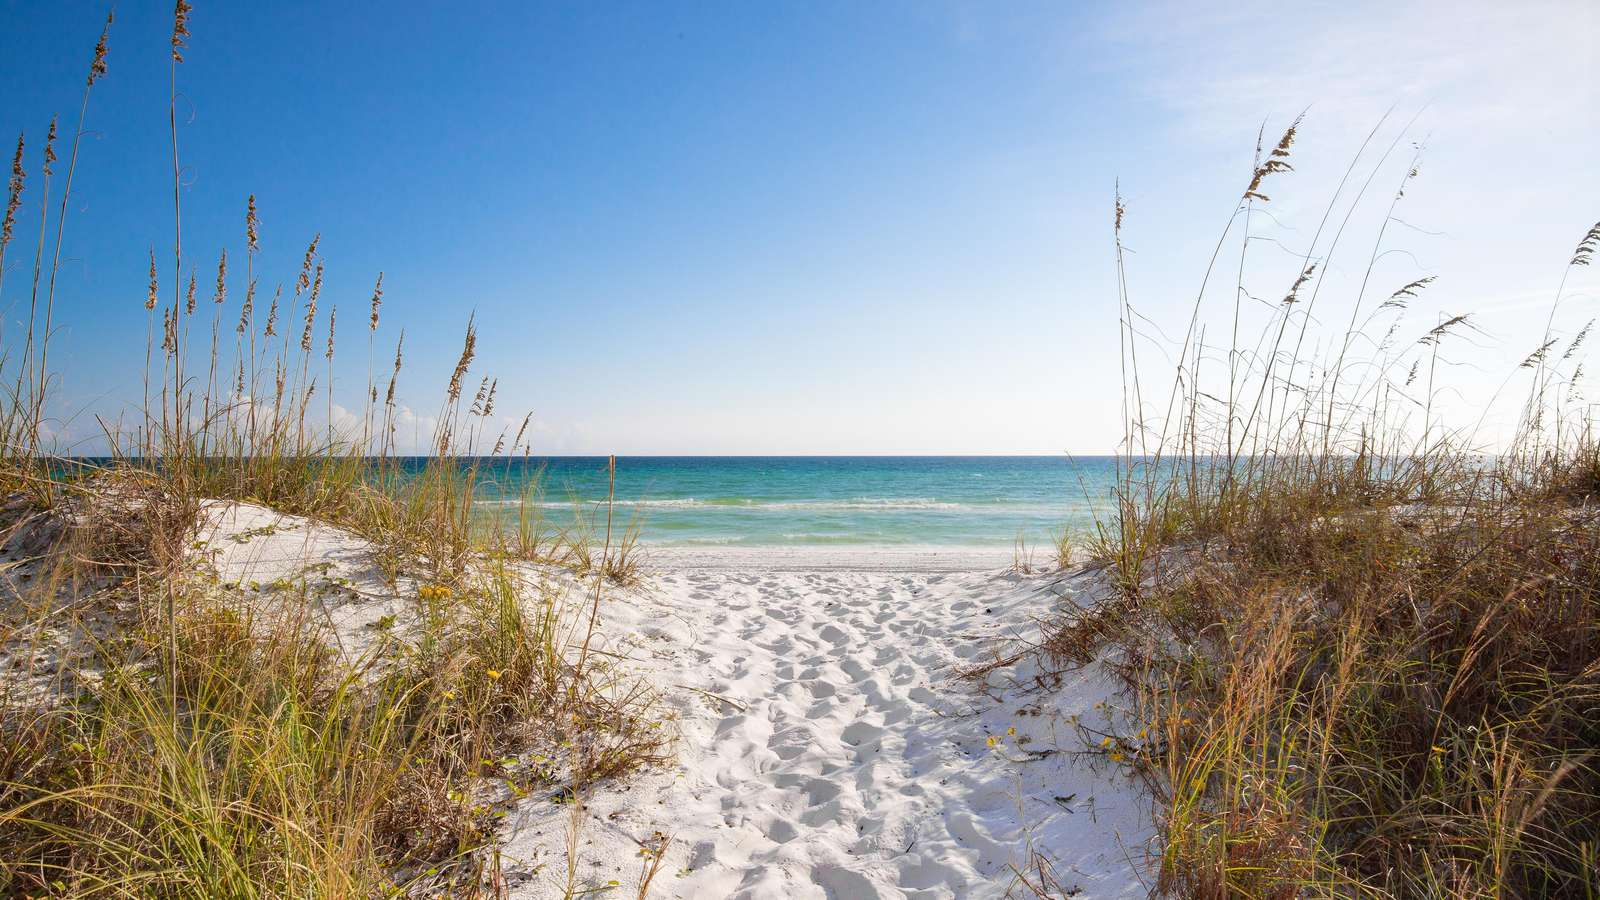 Just steps from your house to the turquiose waters of the Gulf!